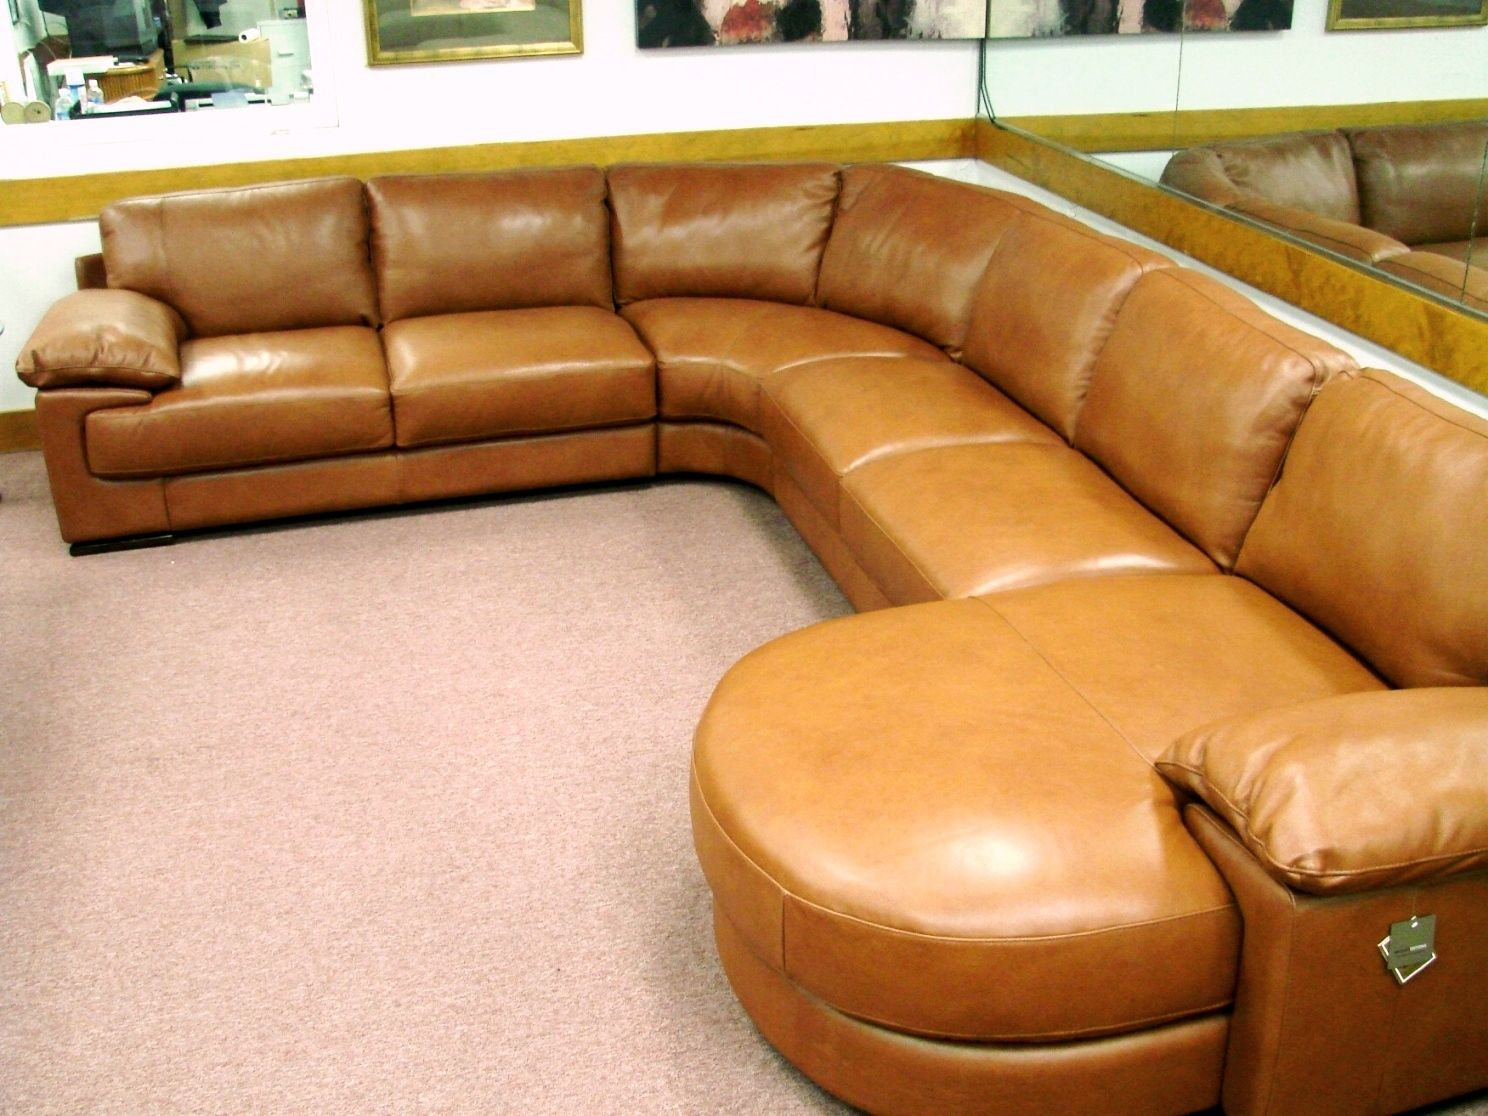 Small Sectional Sofa Natuzzi Editions B Rust piece Leather Sectional Butter soft leather Padded arms